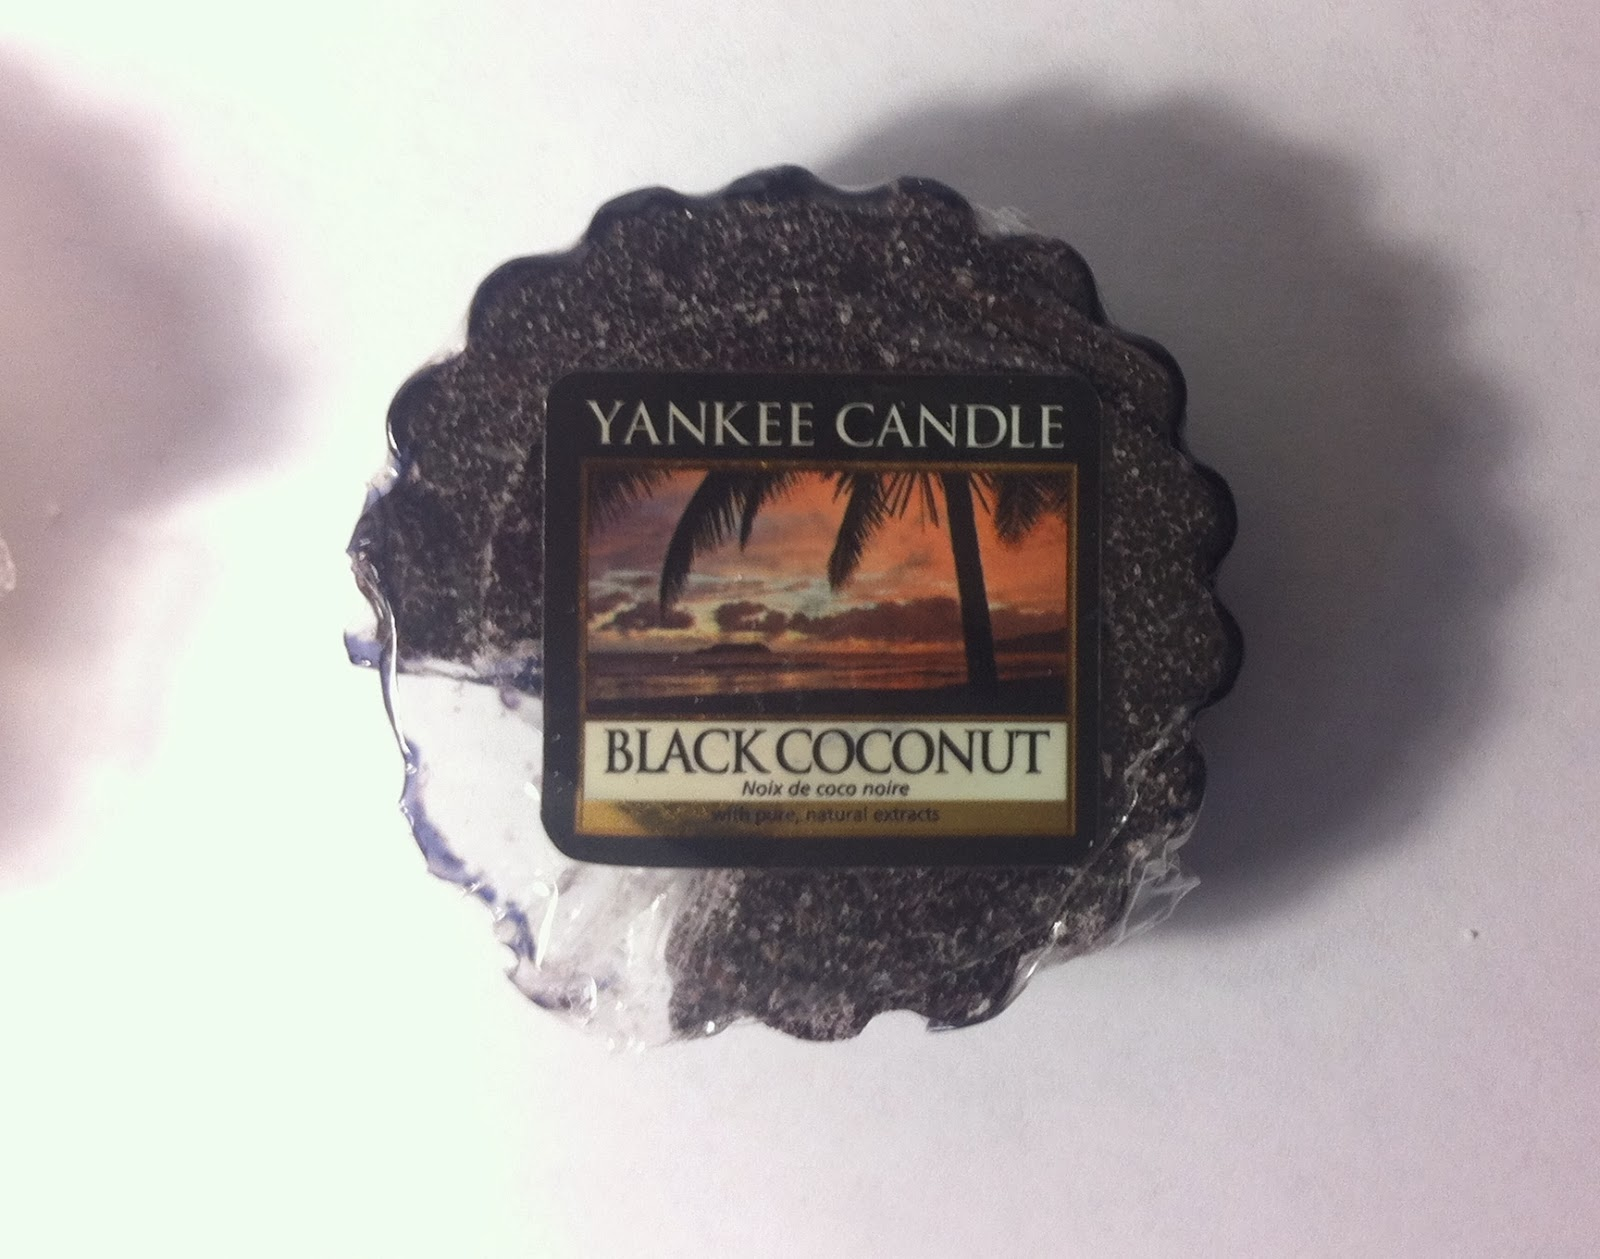 Yankee candle s pier ef fect for Brucia essenze ikea